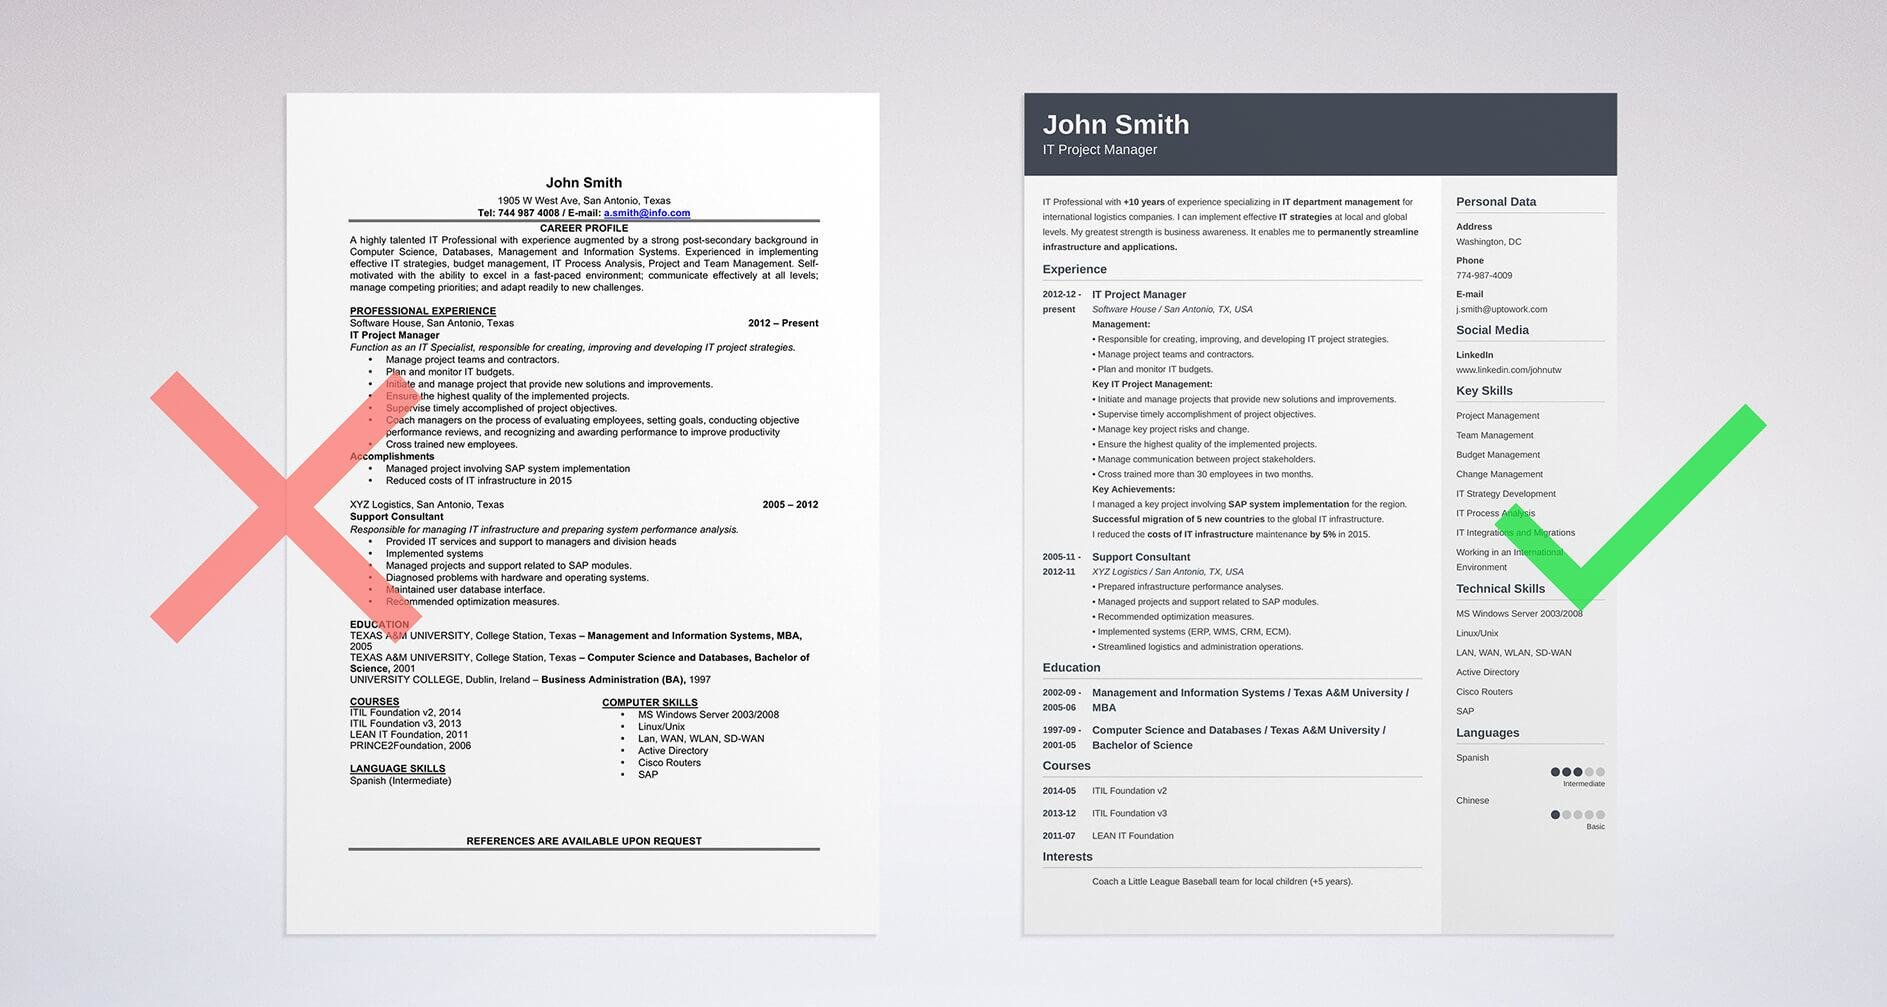 Uptowork  Email For Job Application With Resume